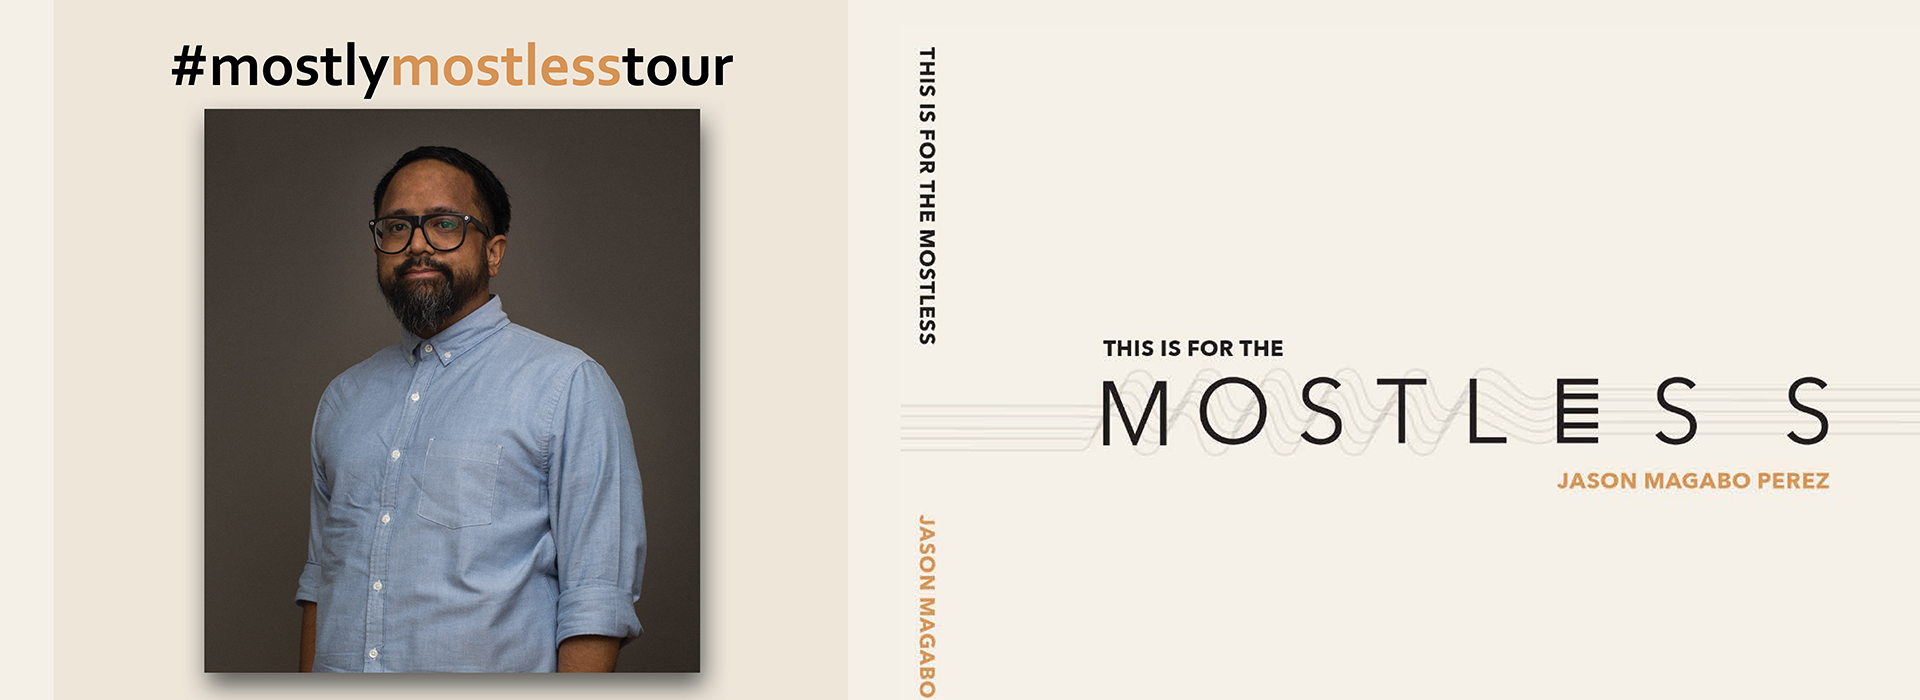 Lubos PASO hosts Nov. 1 book launch for Jason Magabo Perez's 'This is for the mostless'